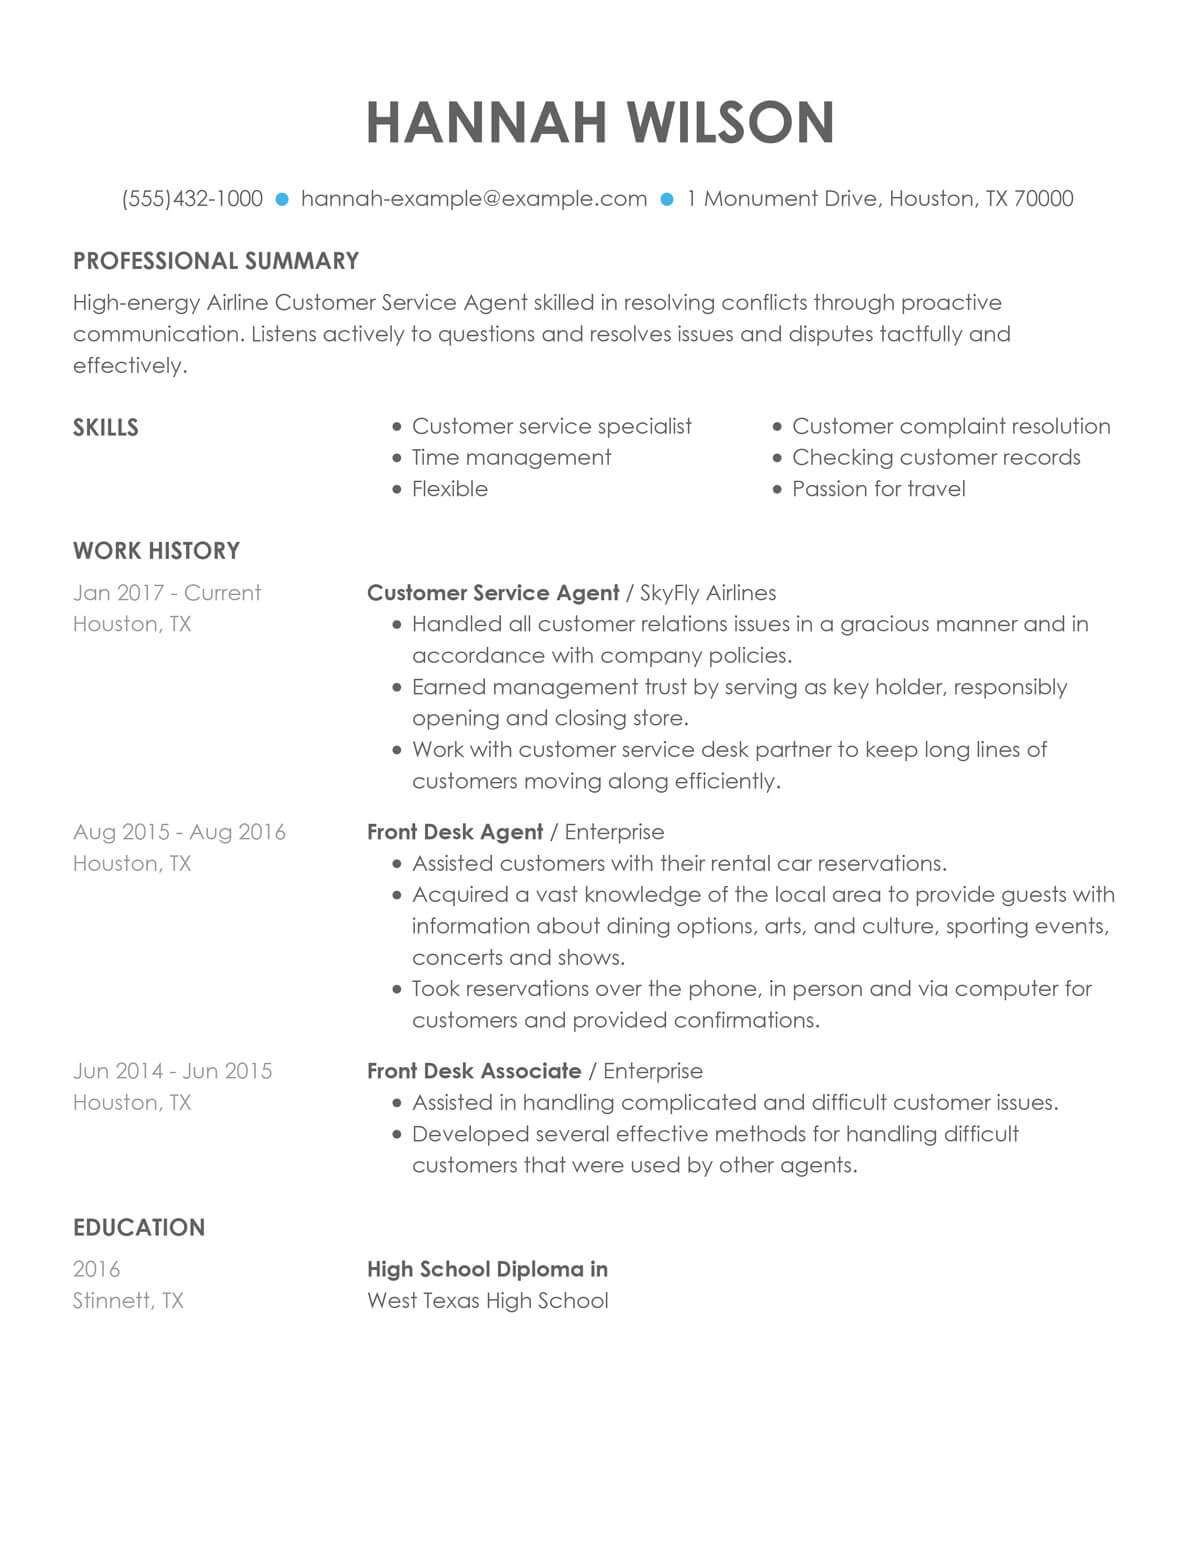 customize our customer representative resume example good headline for service airline Resume Good Headline For Resume For Customer Service